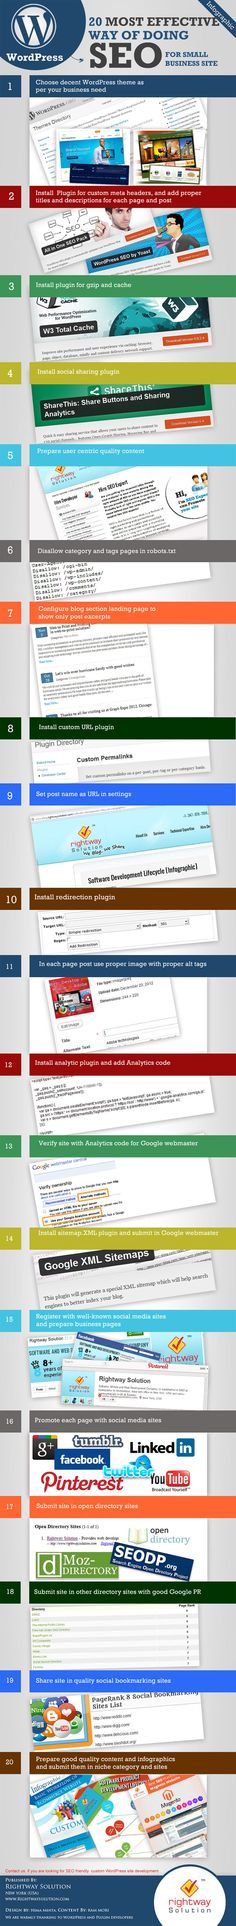 10 WordPress Infographics Any Novice Would Be Fan Of | 3D Models, Website Templates and Illustrations blog | Templates.com